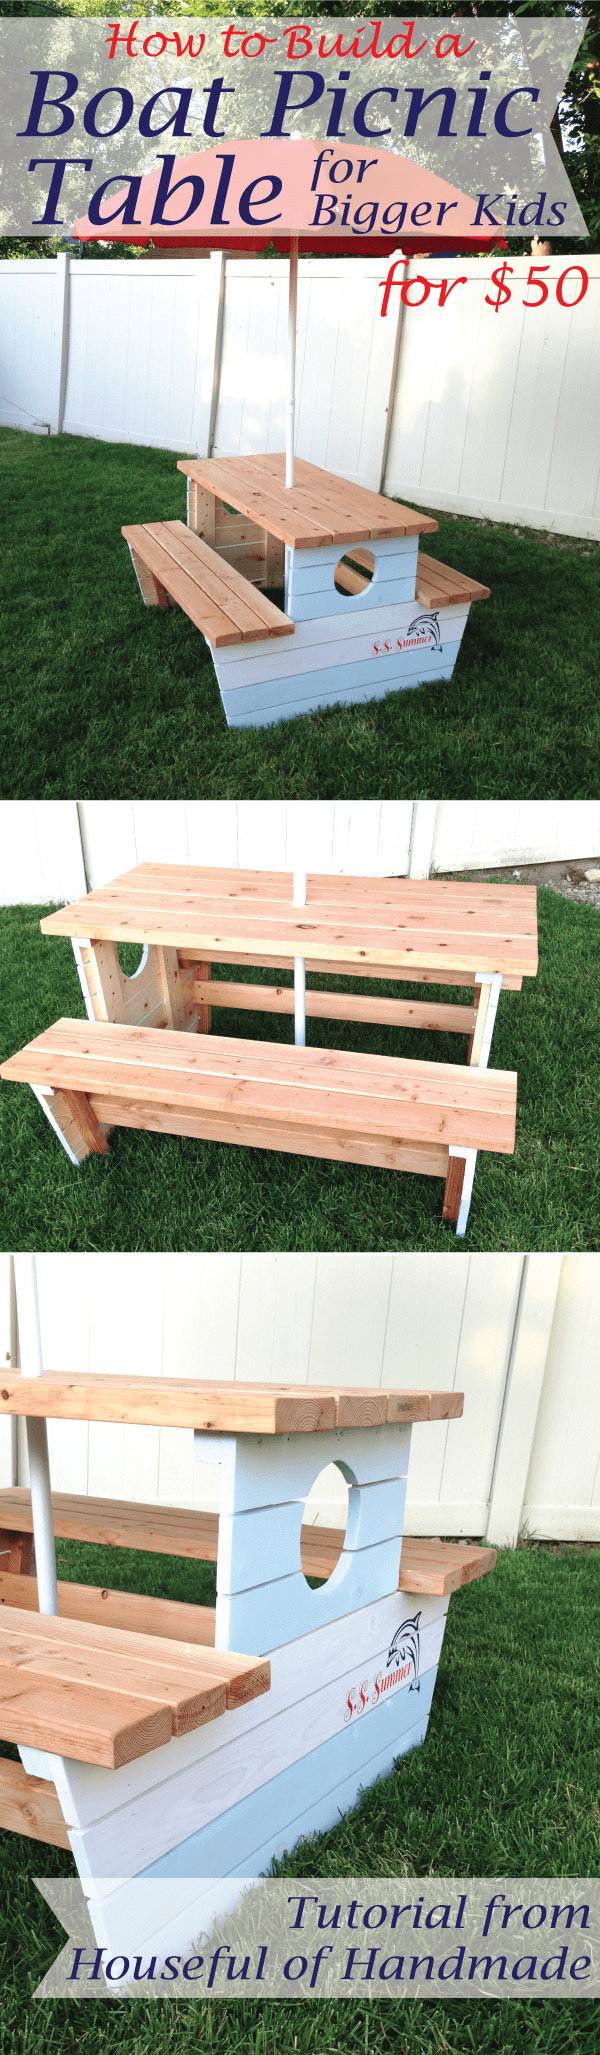 How to build a boat picnic table for bigger kids. Inspired by plans form Ana White. Tutorial on Houseful of Handmade.  #diy #woodworking #buildplans #picnictable #kids